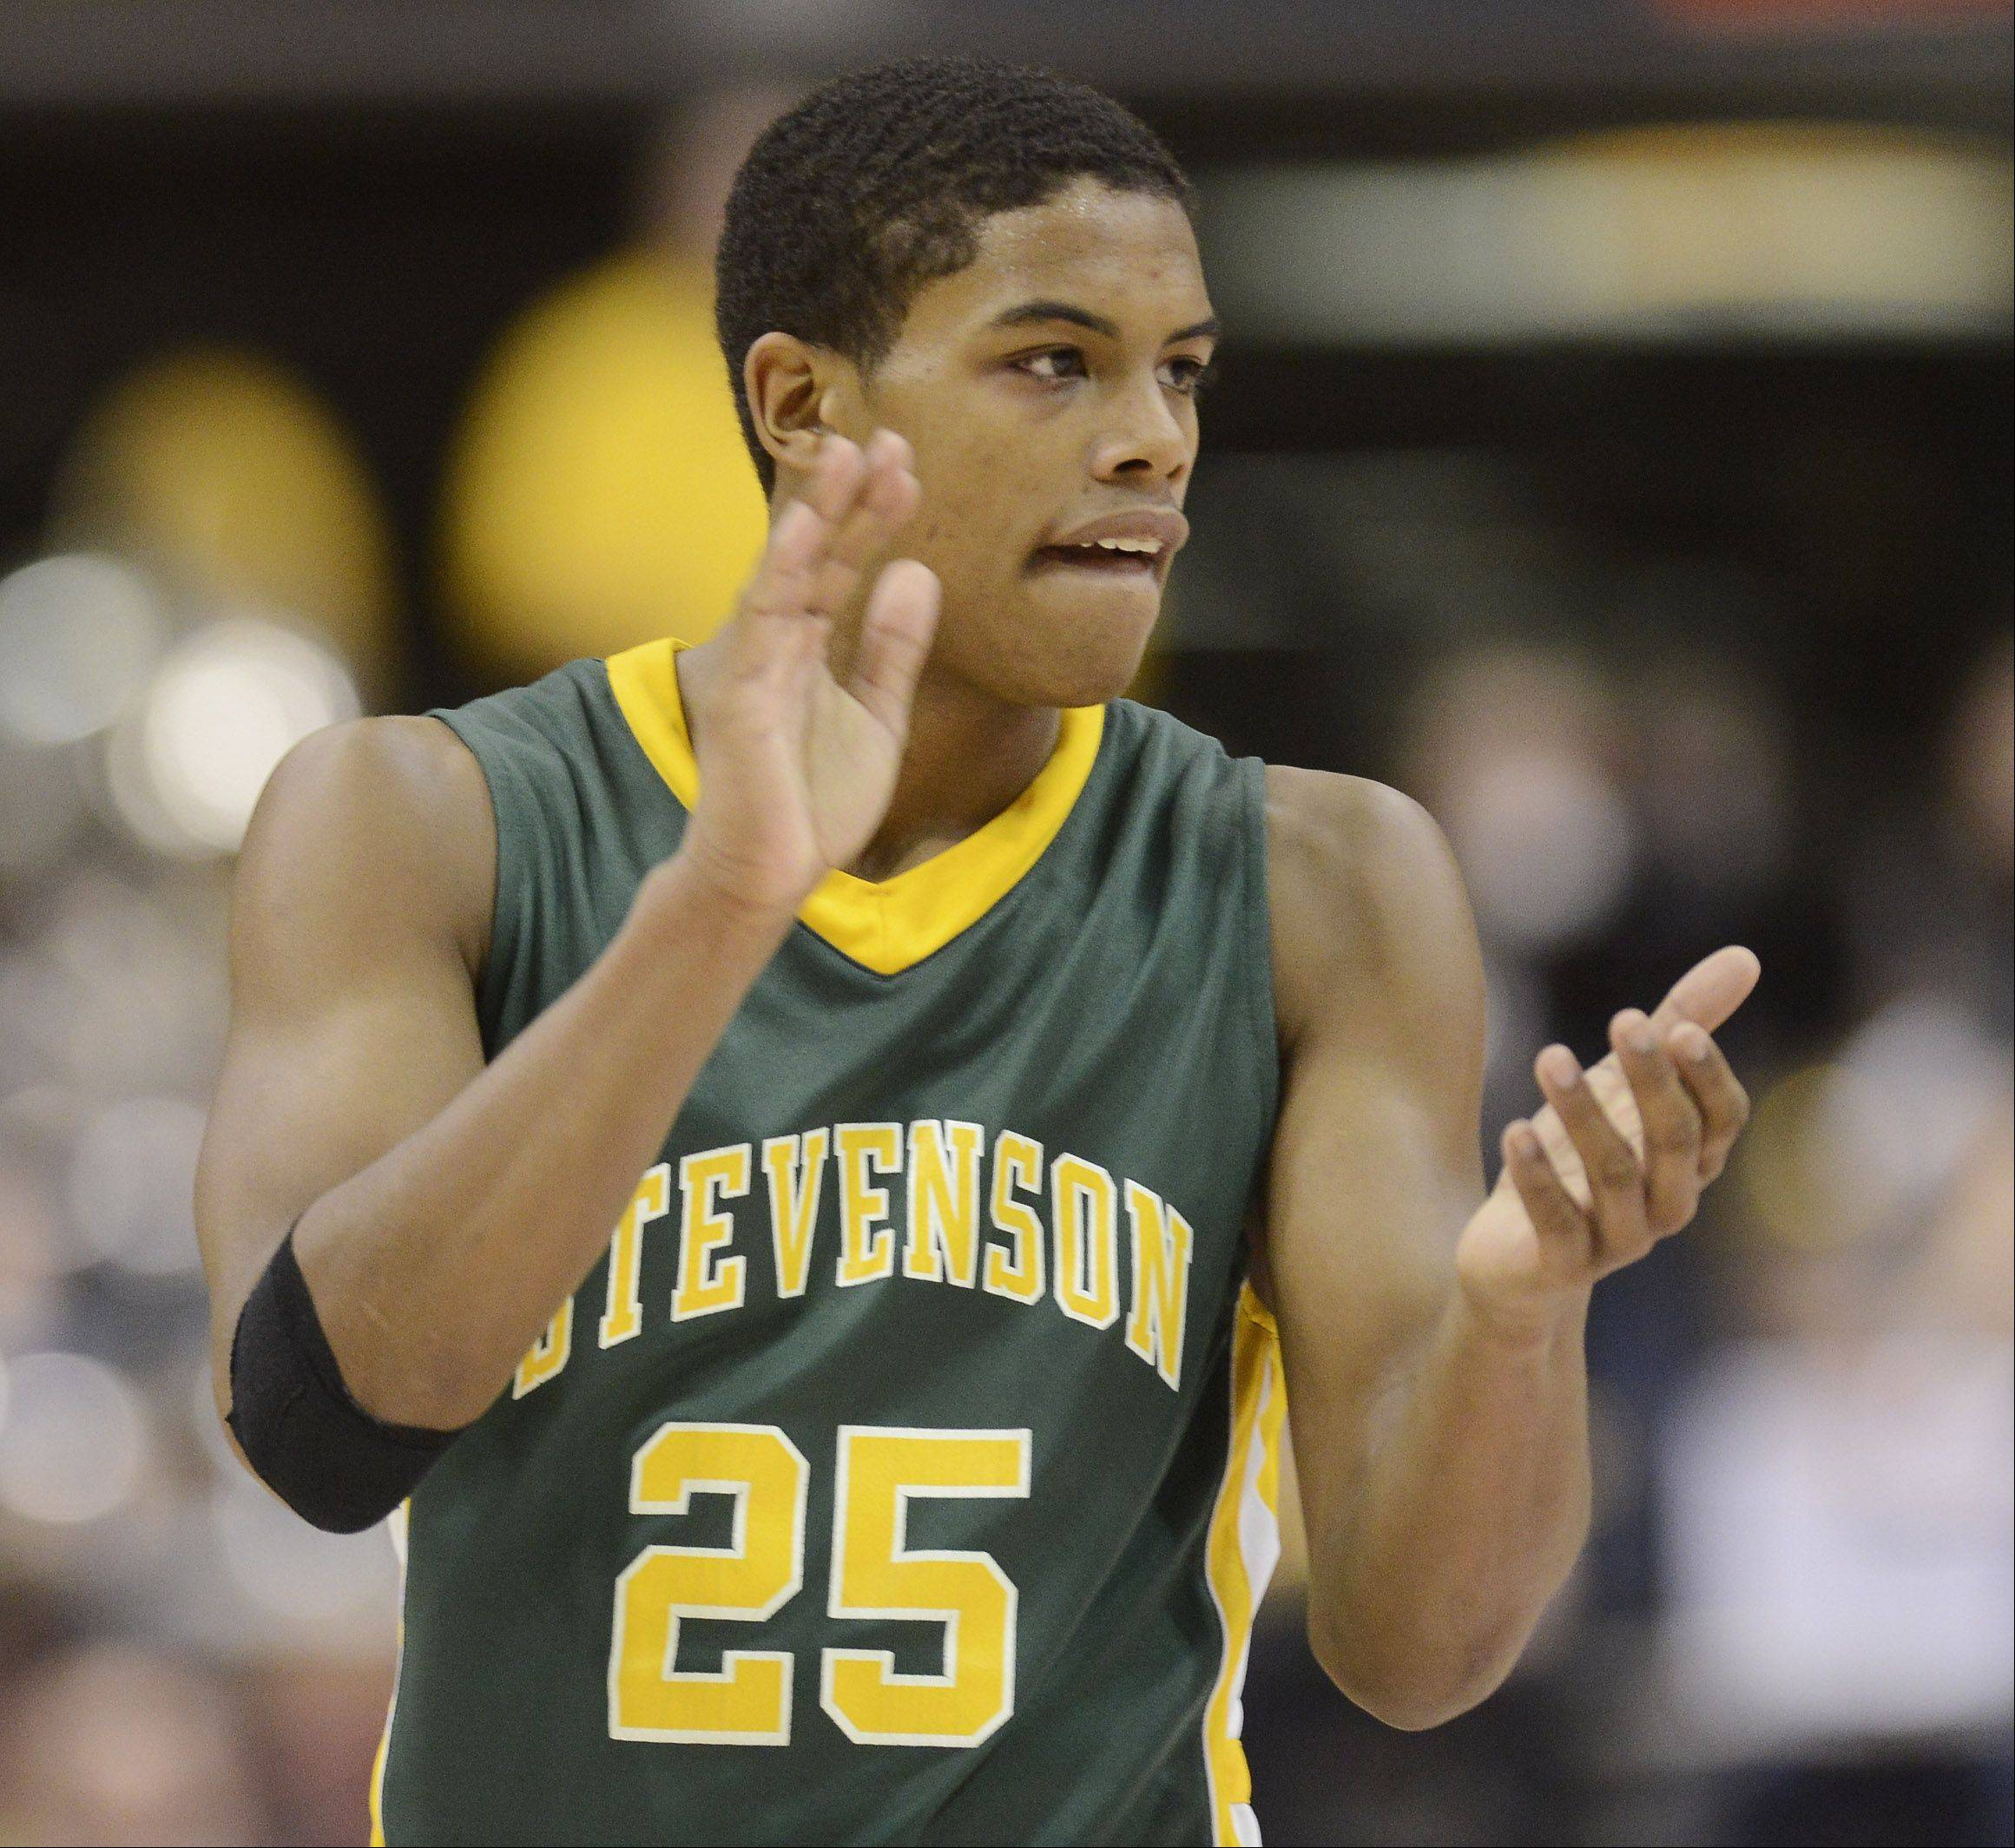 Stevenson's Cameron Green claps for his team.